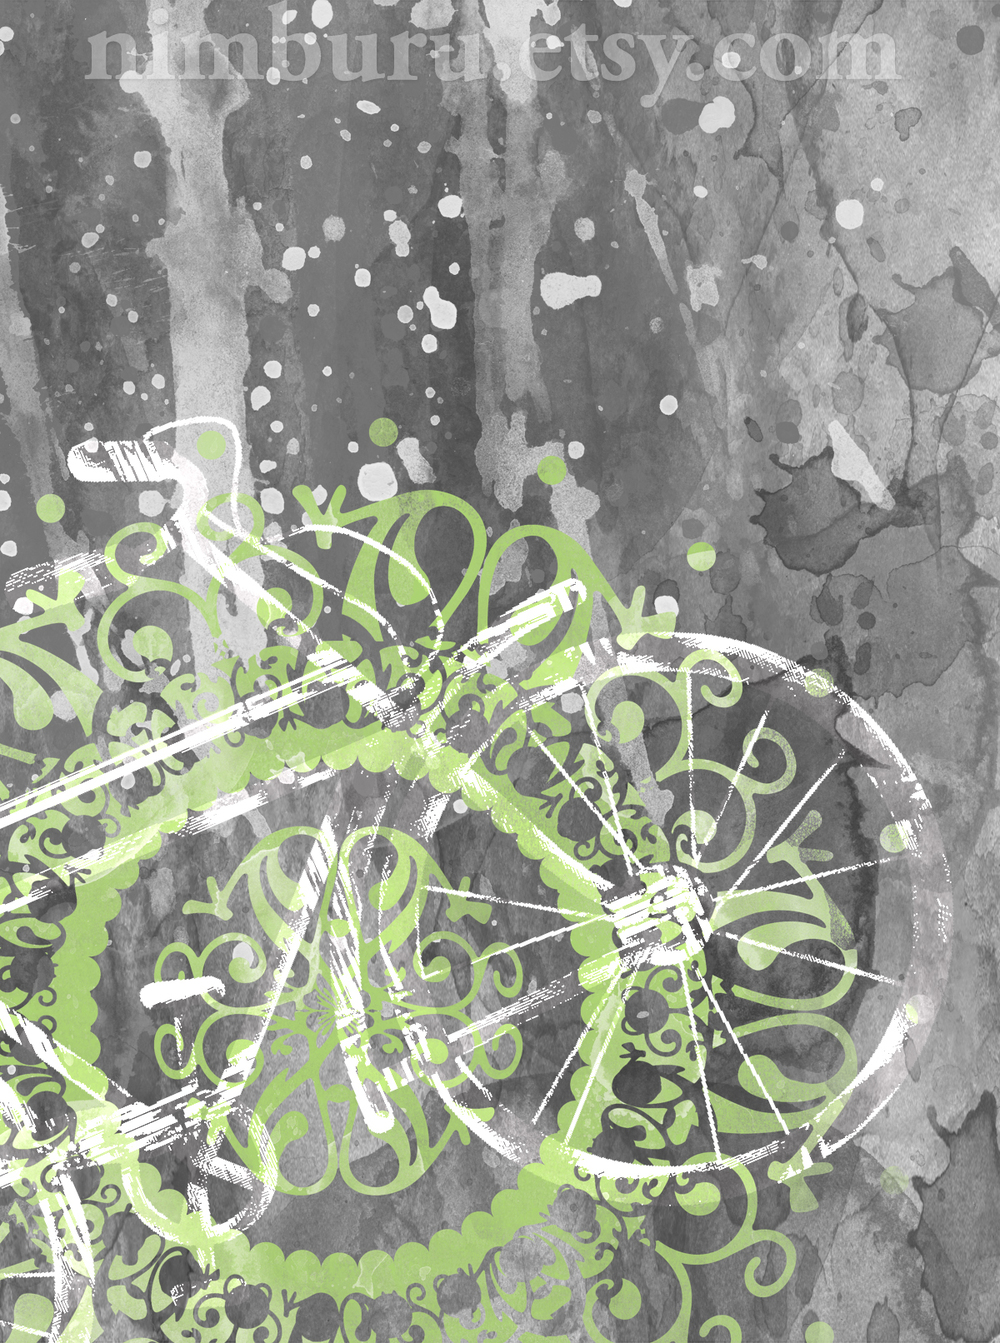 Watercolor Grunge Bicycle Art